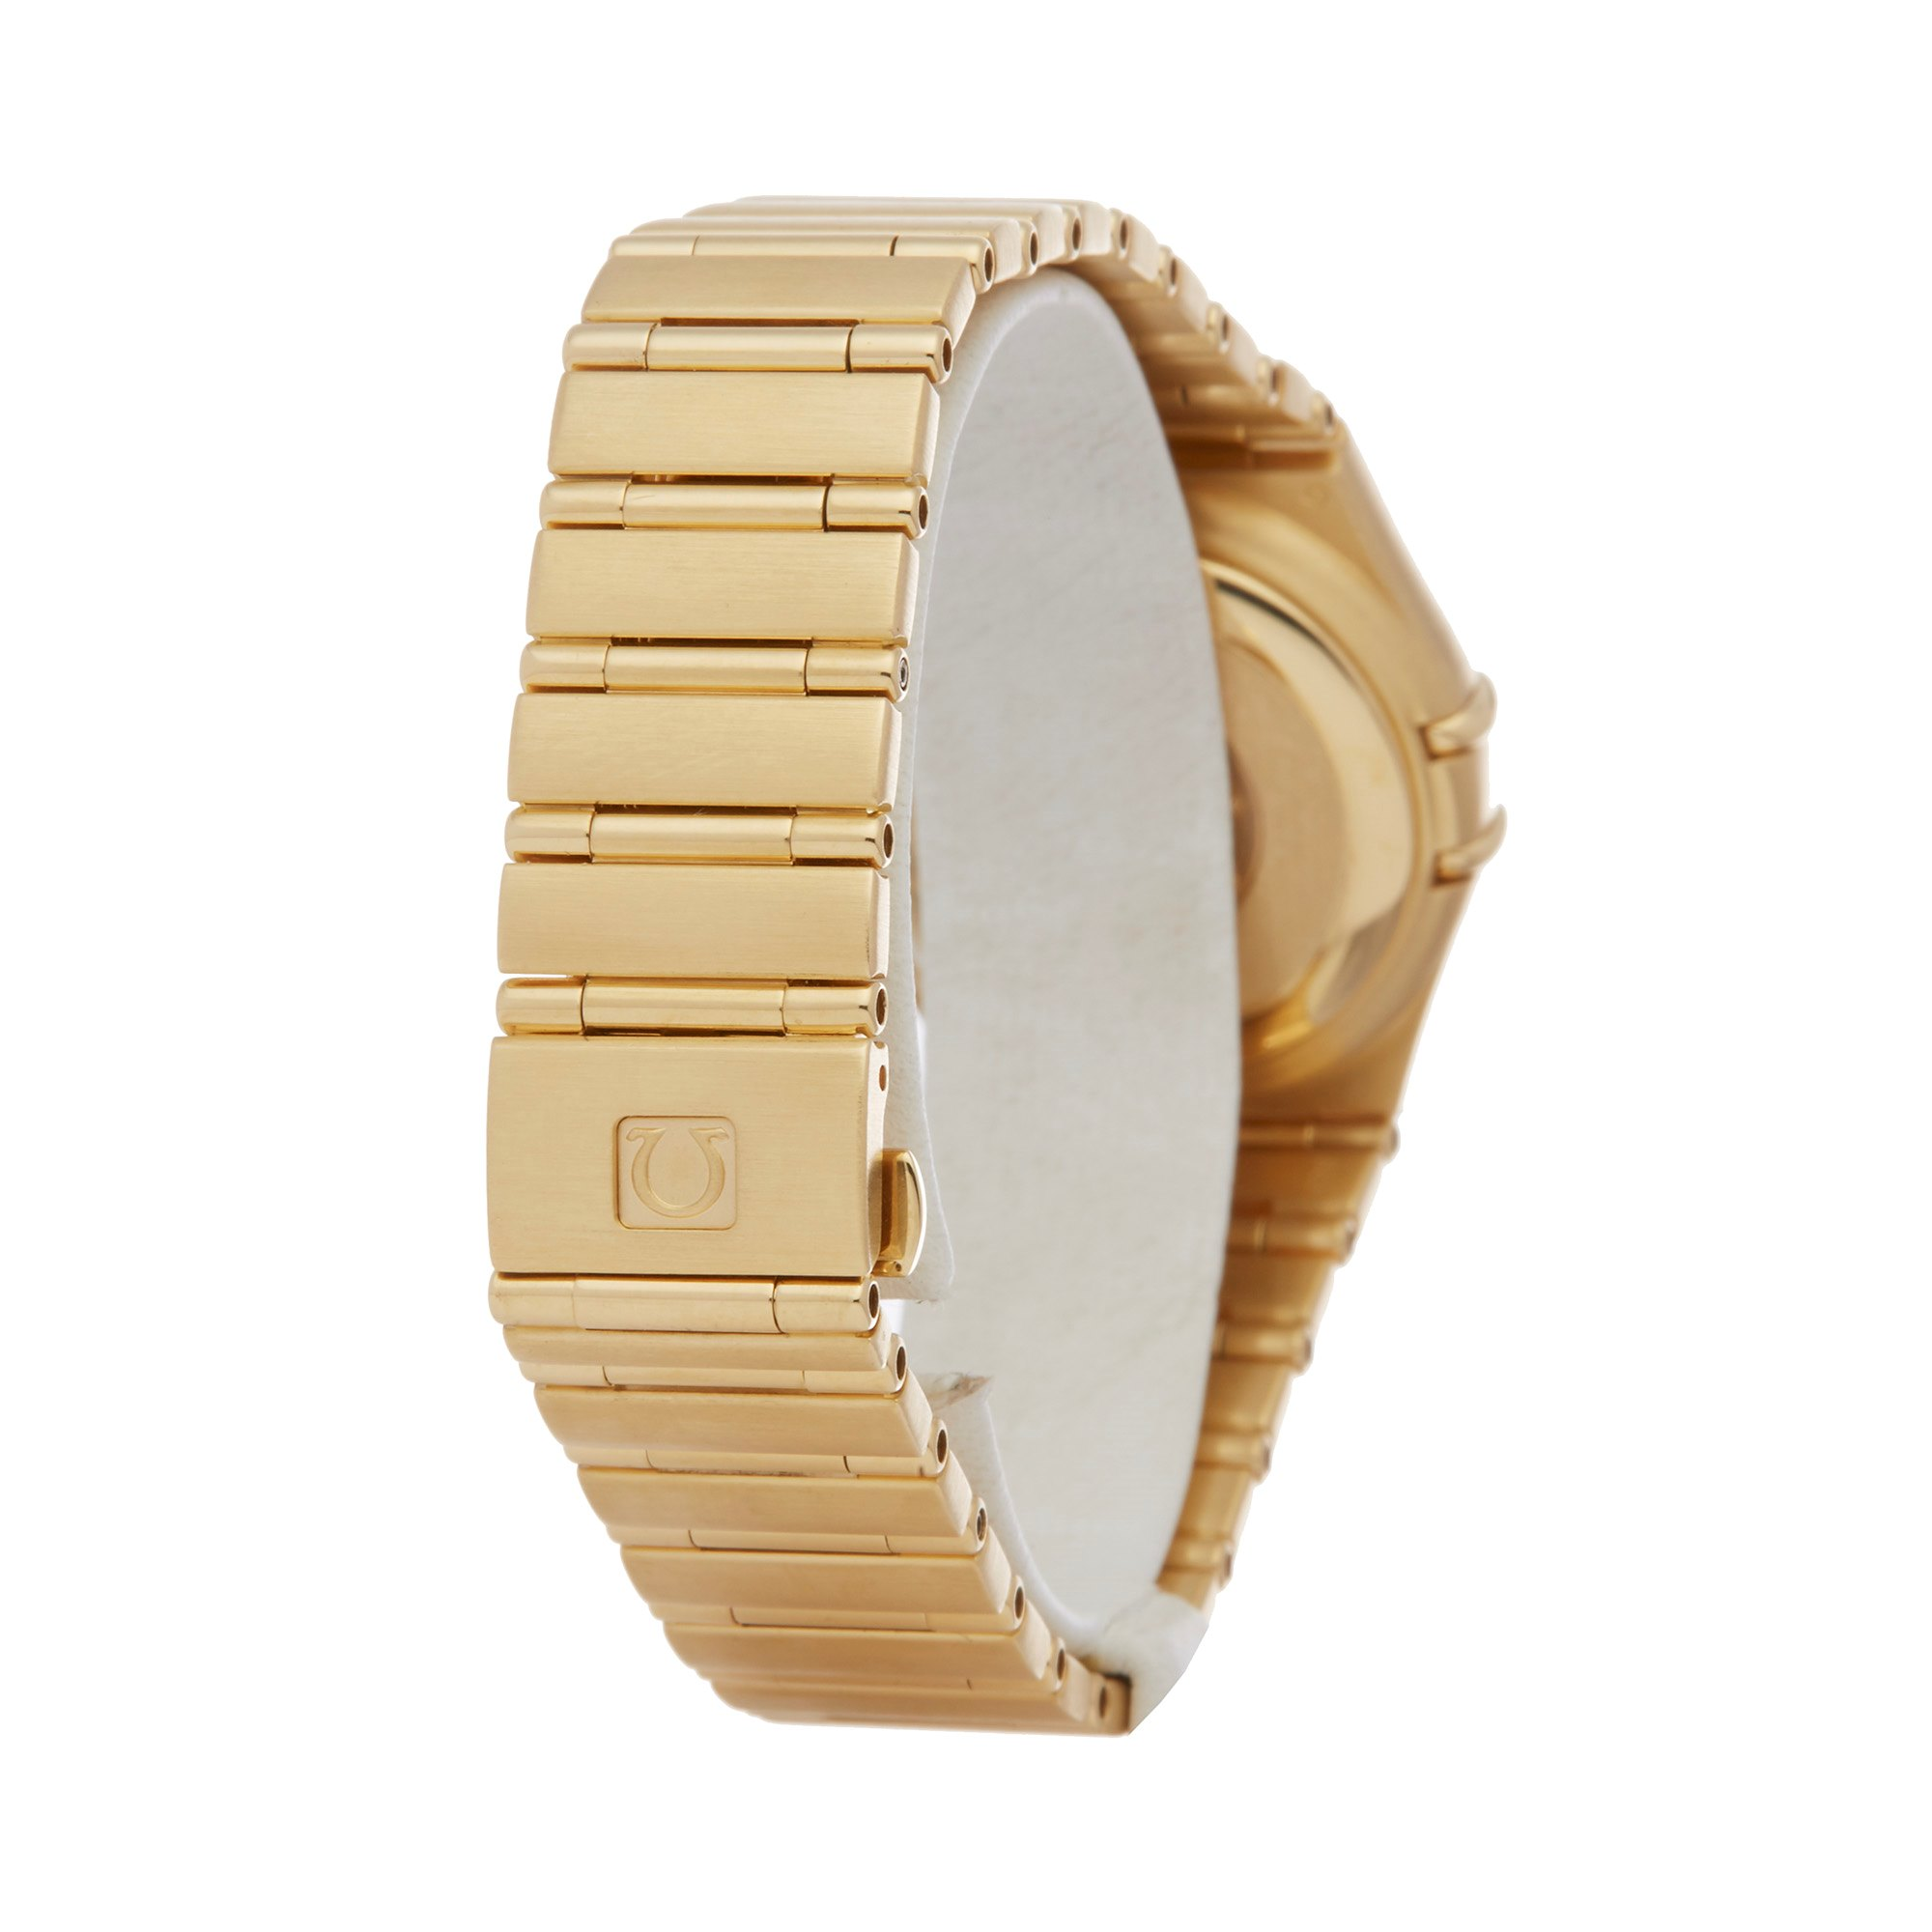 Omega Constellation Iris Mid Size Automatic 18K Yellow Gold 1197.79.00